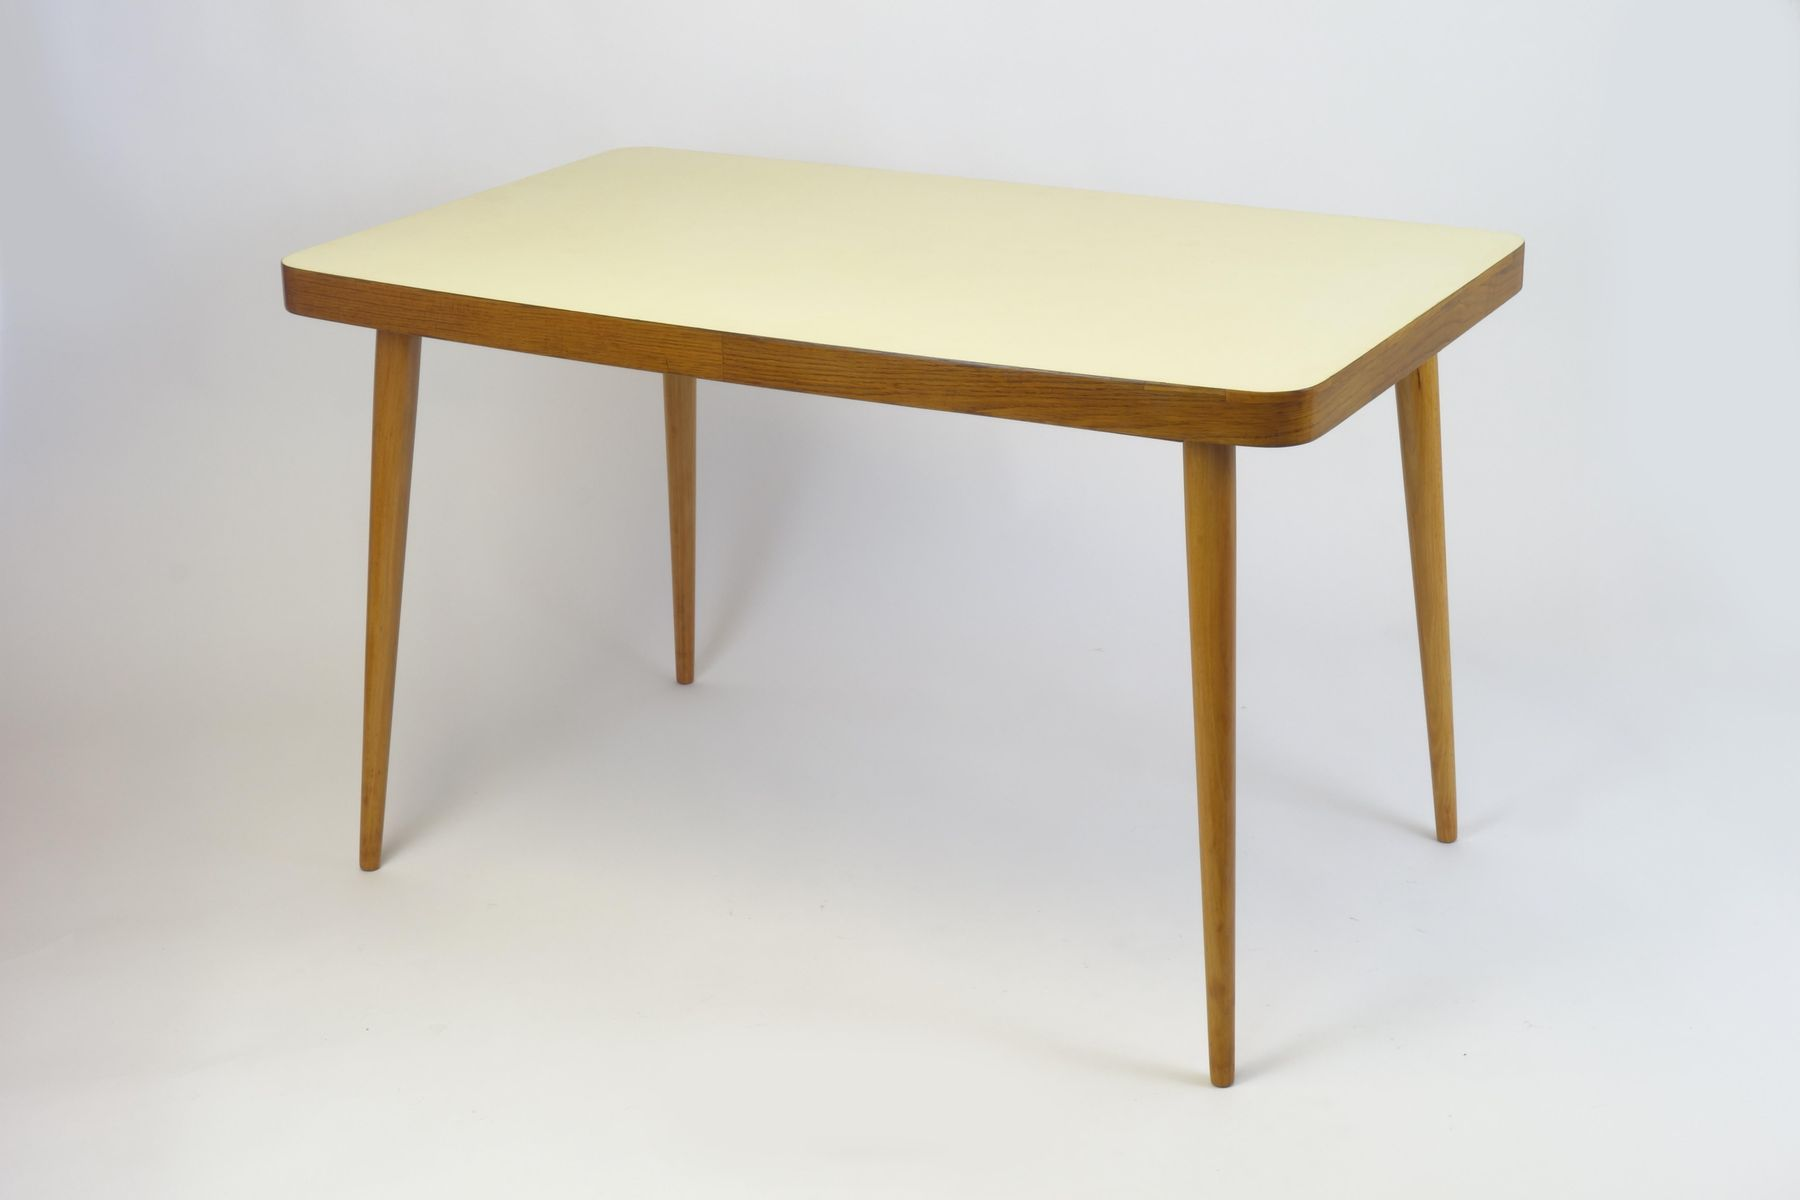 Yellow top wooden dining table 1950s for sale at pamono for Wooden dining tables for sale